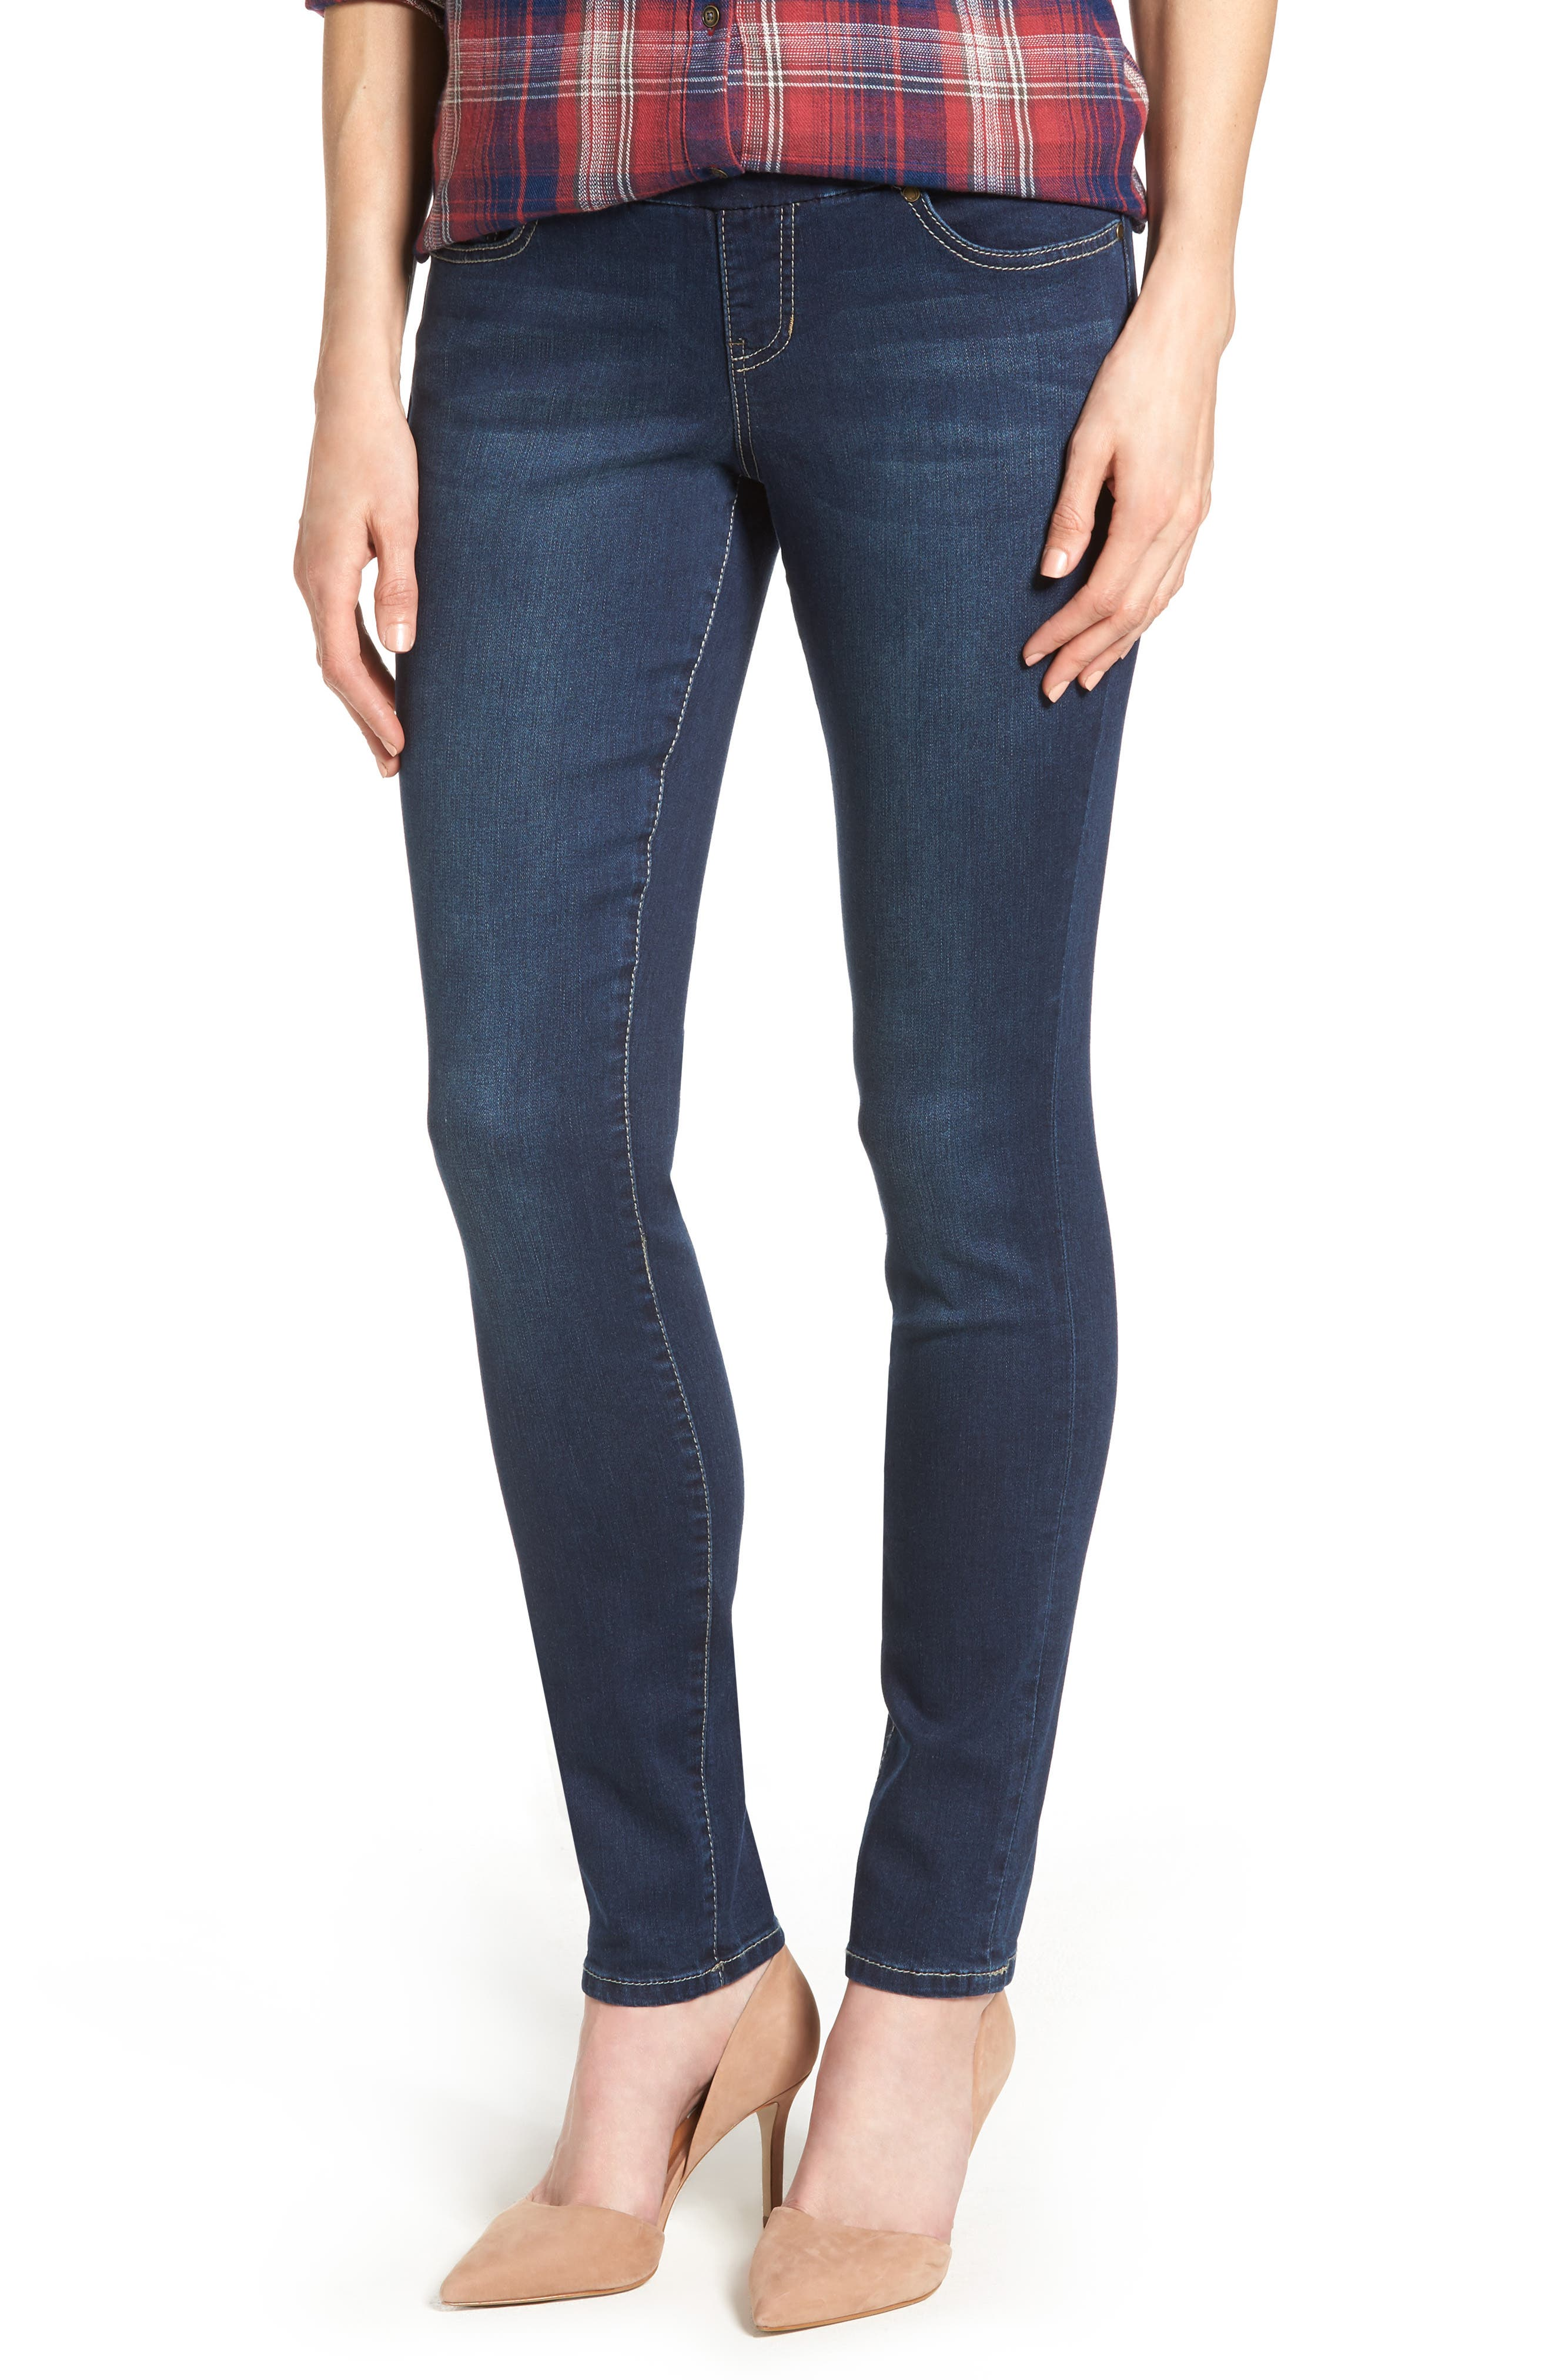 Alternate Image 1 Selected - Jag Jeans Nora Stretch Skinny Jeans